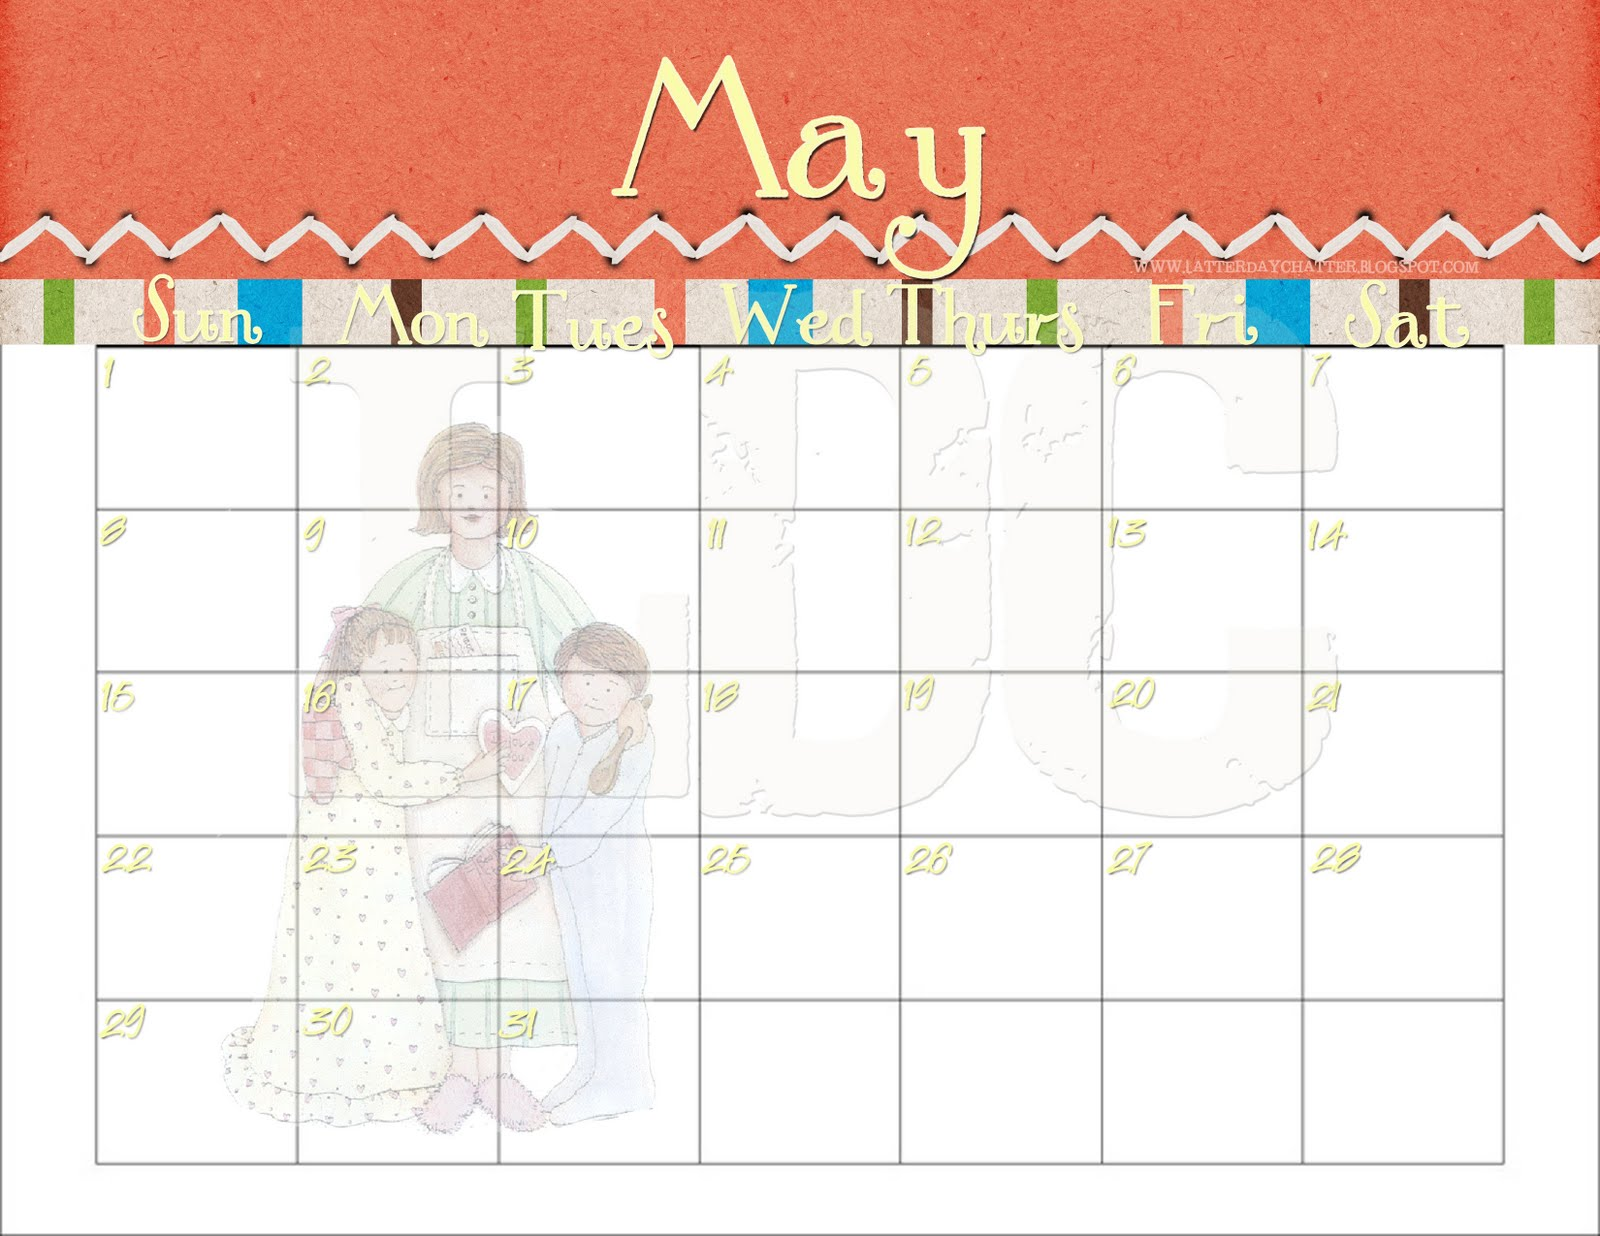 Latter-Day Chatter: 2011 Monthly Calendars